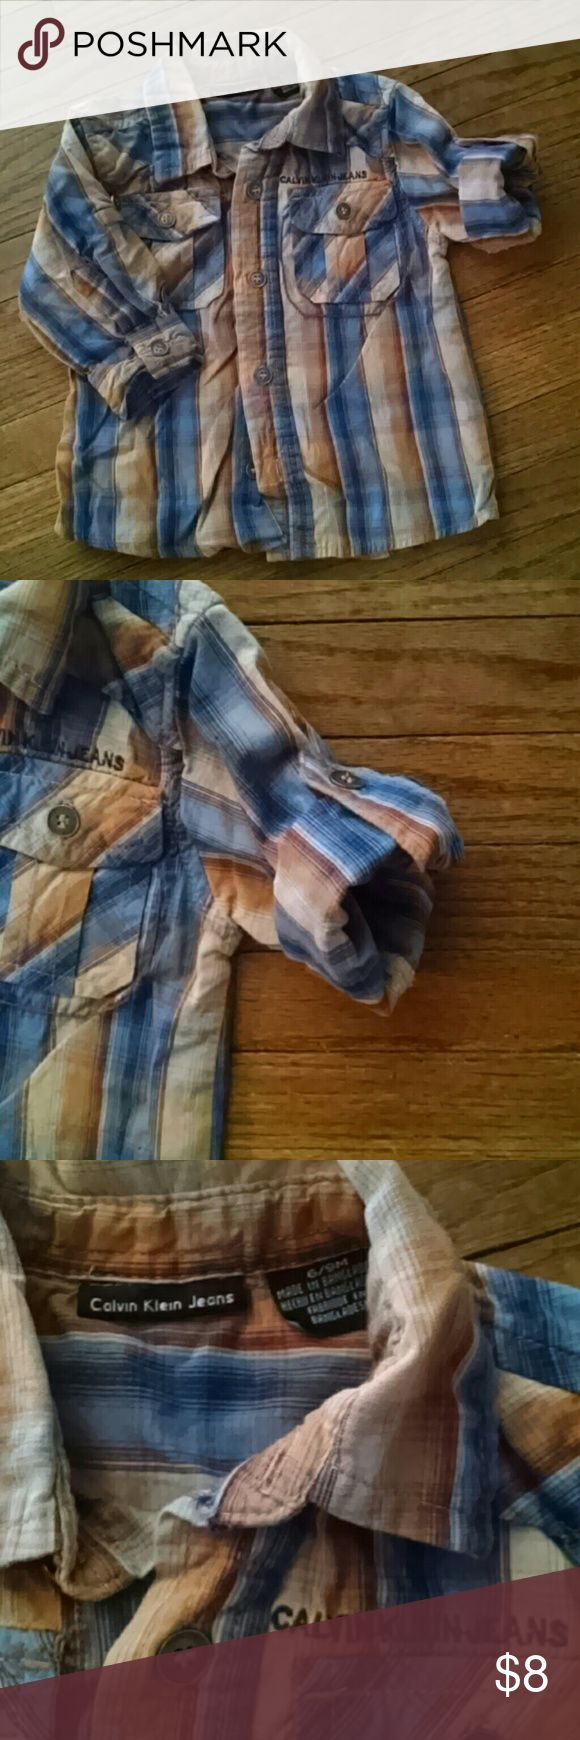 Calvin Klein Jeans Baby button up shirt 6-9 month old boys button up shirt. Sleeves roll up and can be secured by button. Super cute. Calvin Klein  Jeans to complete the outfit also for sale in my closet. Bundle up and take 15% off two! Calvin Klein Jeans Shirts & Tops Button Down Shirts